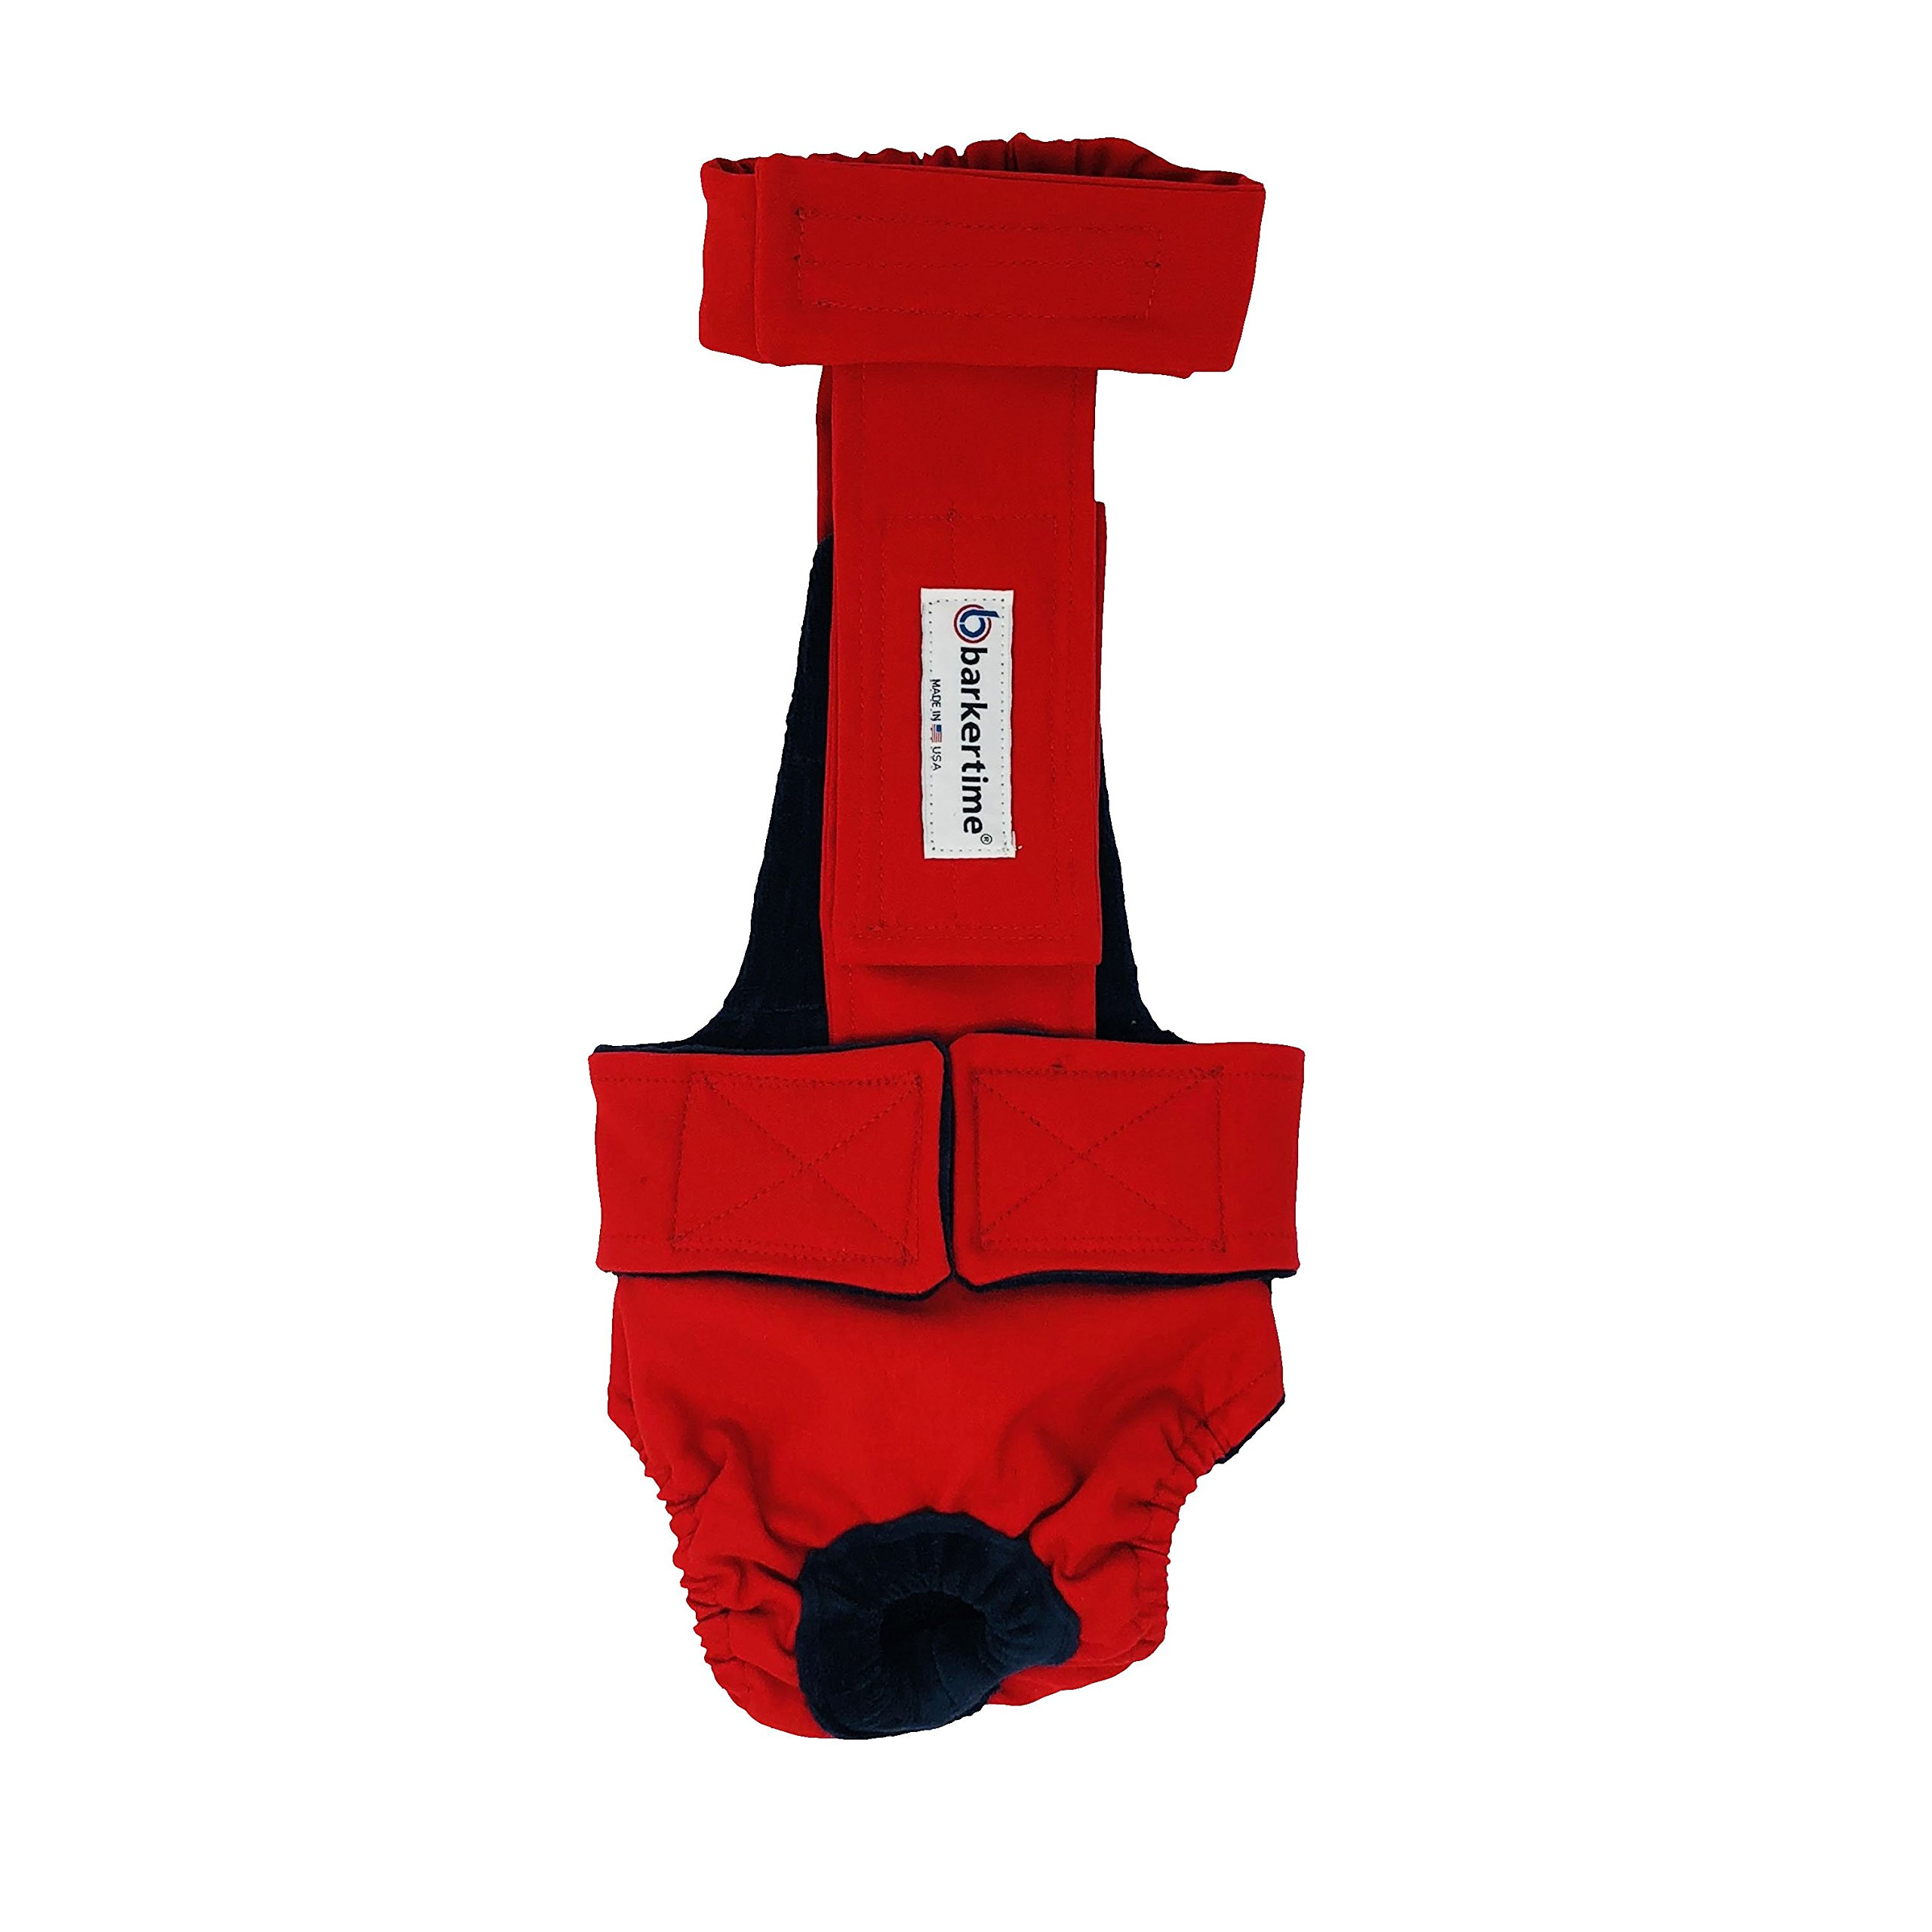 Barkertime Dog Diaper Overall - Made in USA - Cherry Red Escape-Proof Washable Dog Diaper Overall, XXL, Without Tail Hole for Dog Incontinence, Marking, Housetraining and Females in Heat